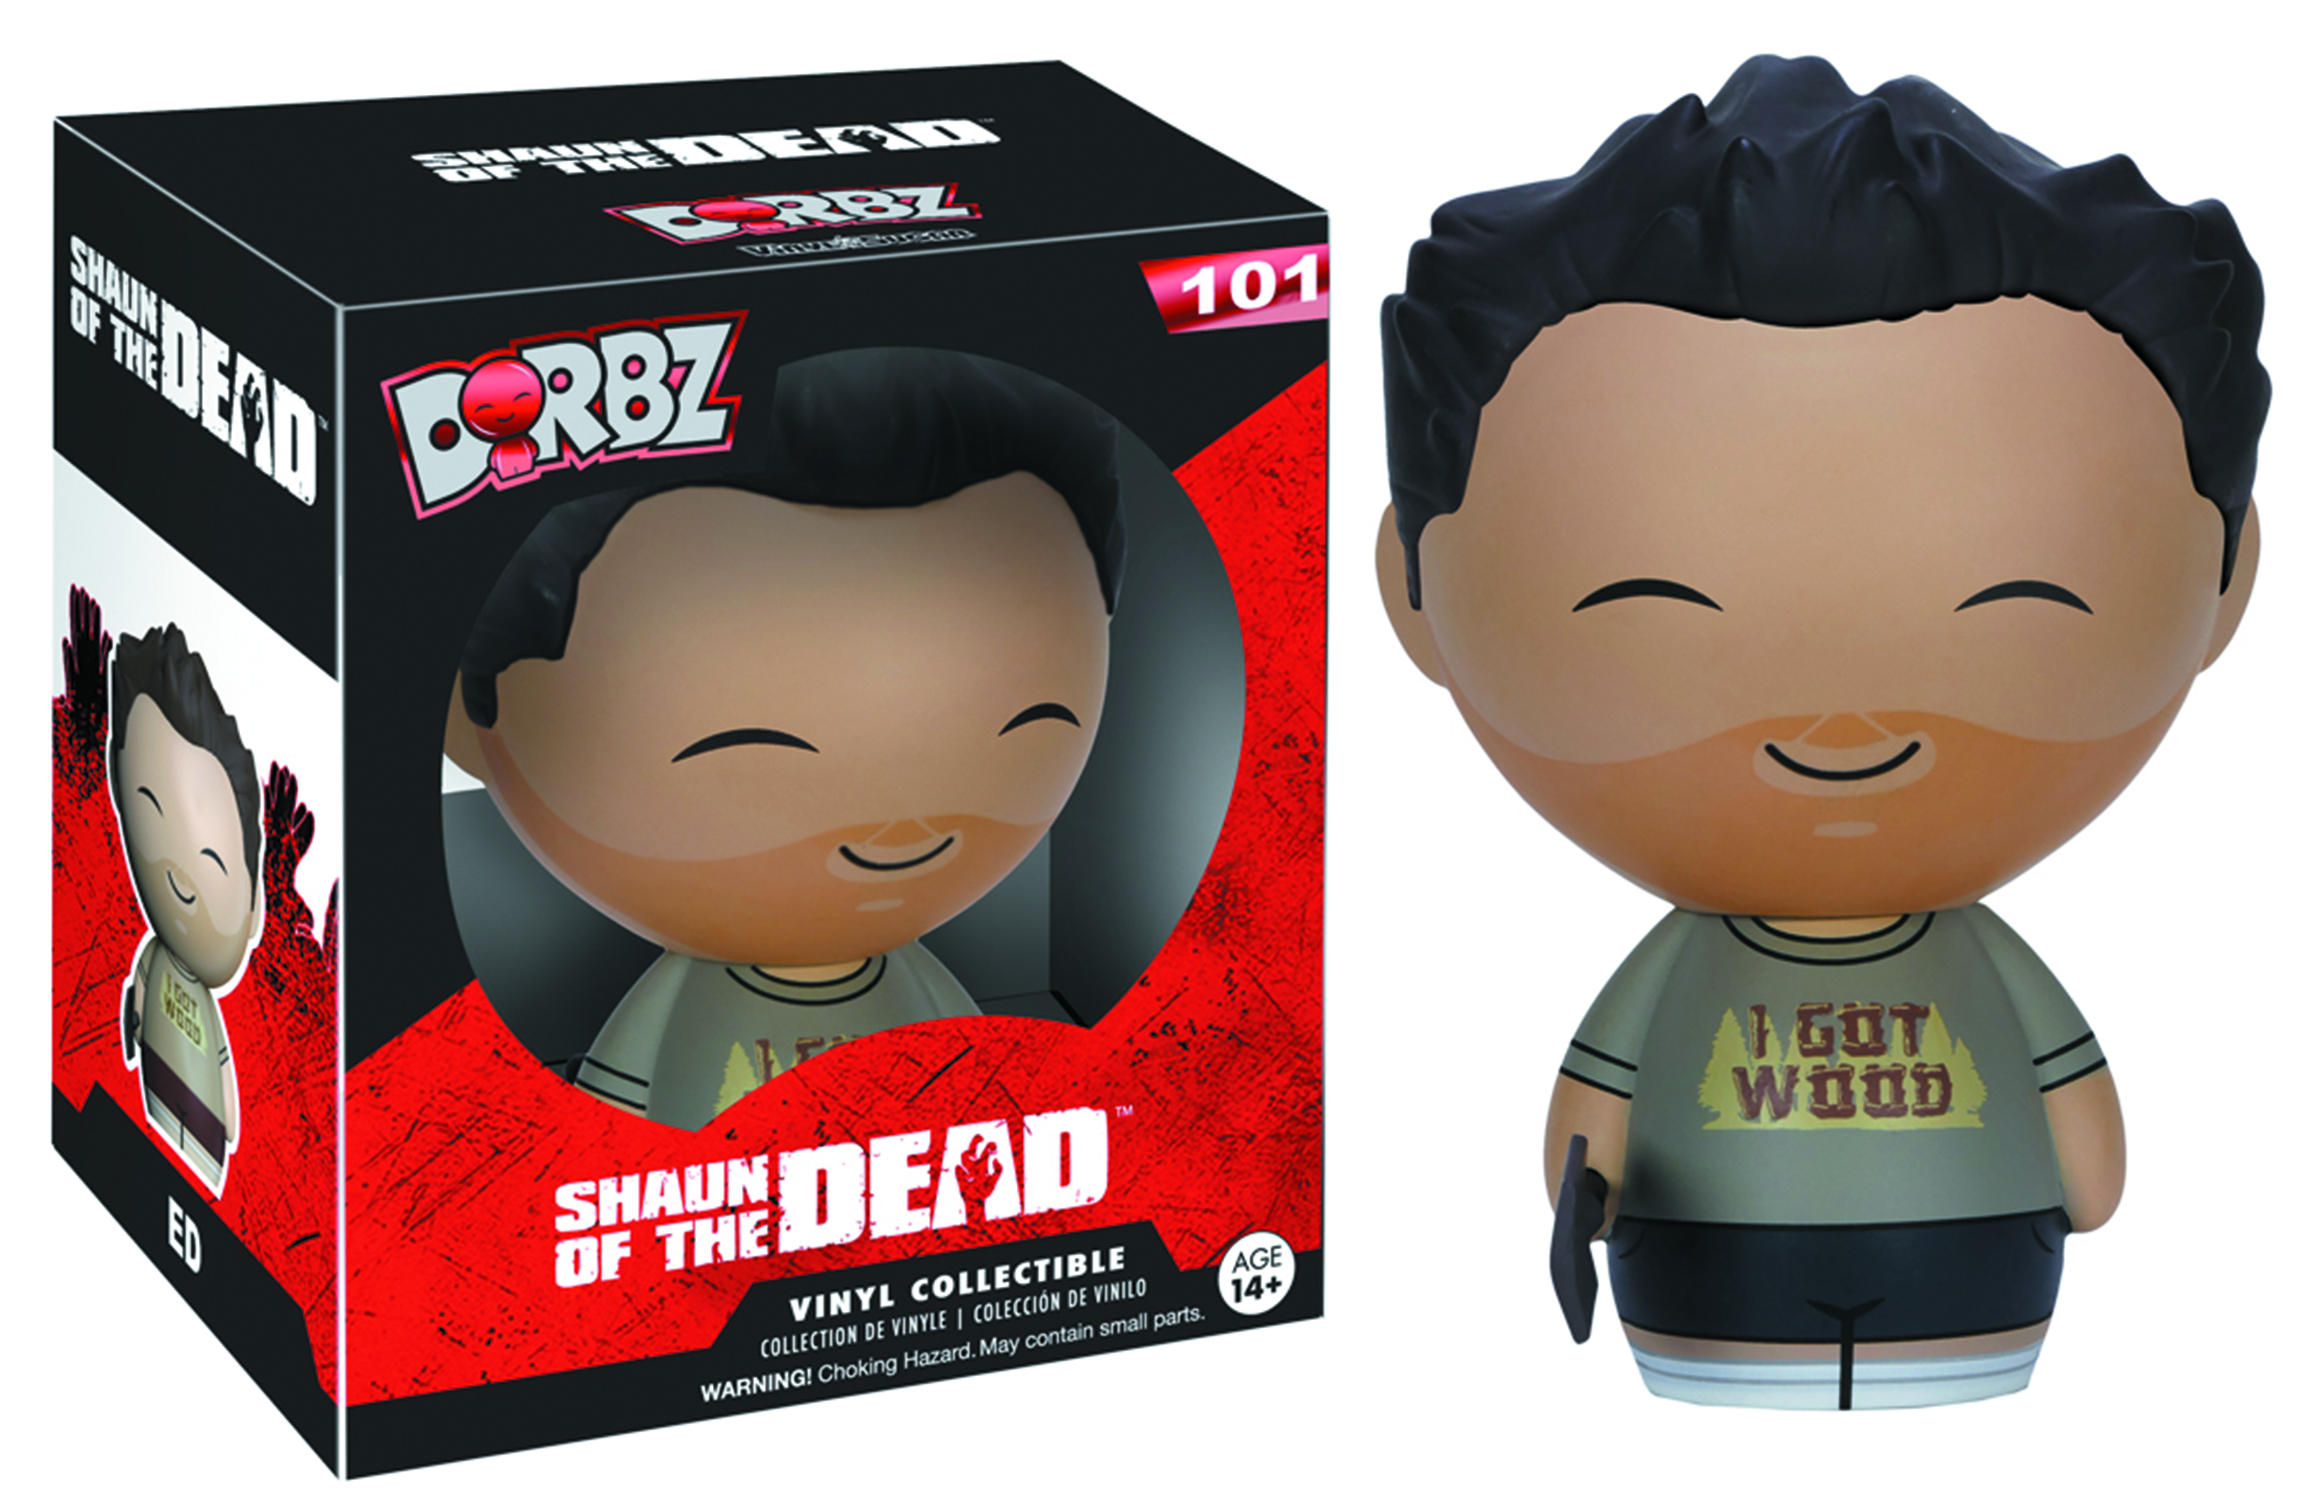 DORBZ SHAUN OF THE DEAD ED VINYL FIG